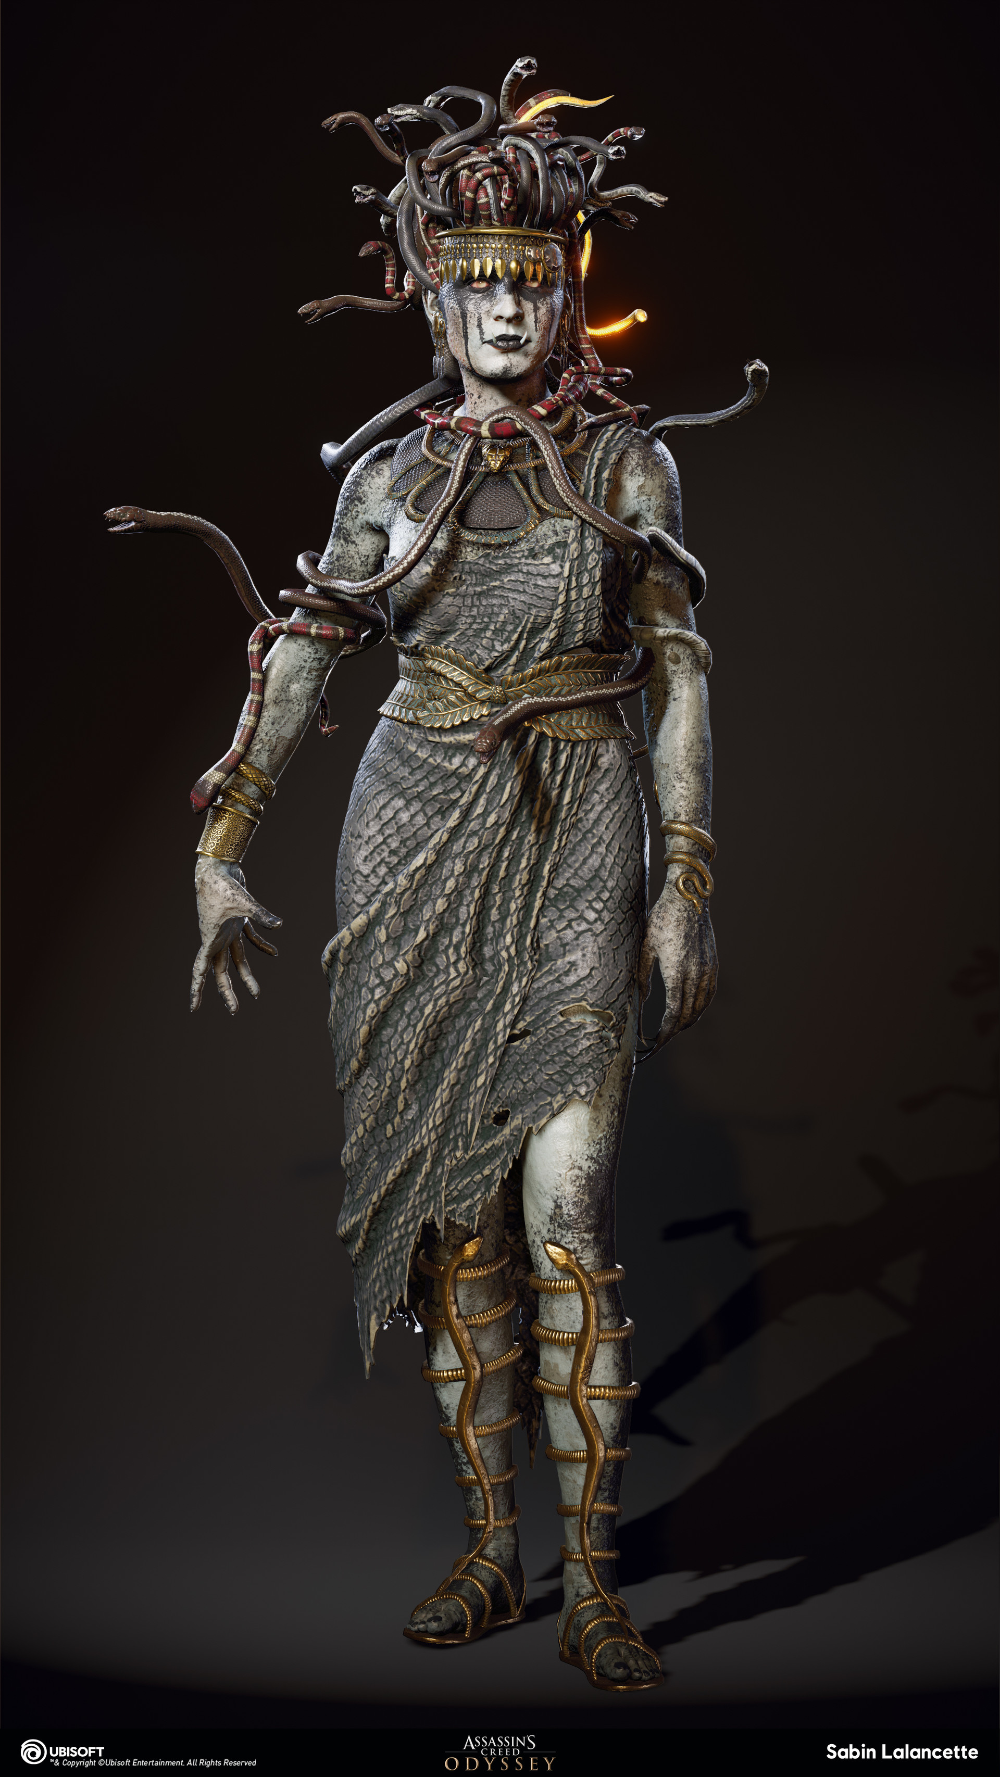 Assassin's Creed Odyssey Petrified Temple And Medusa Guide